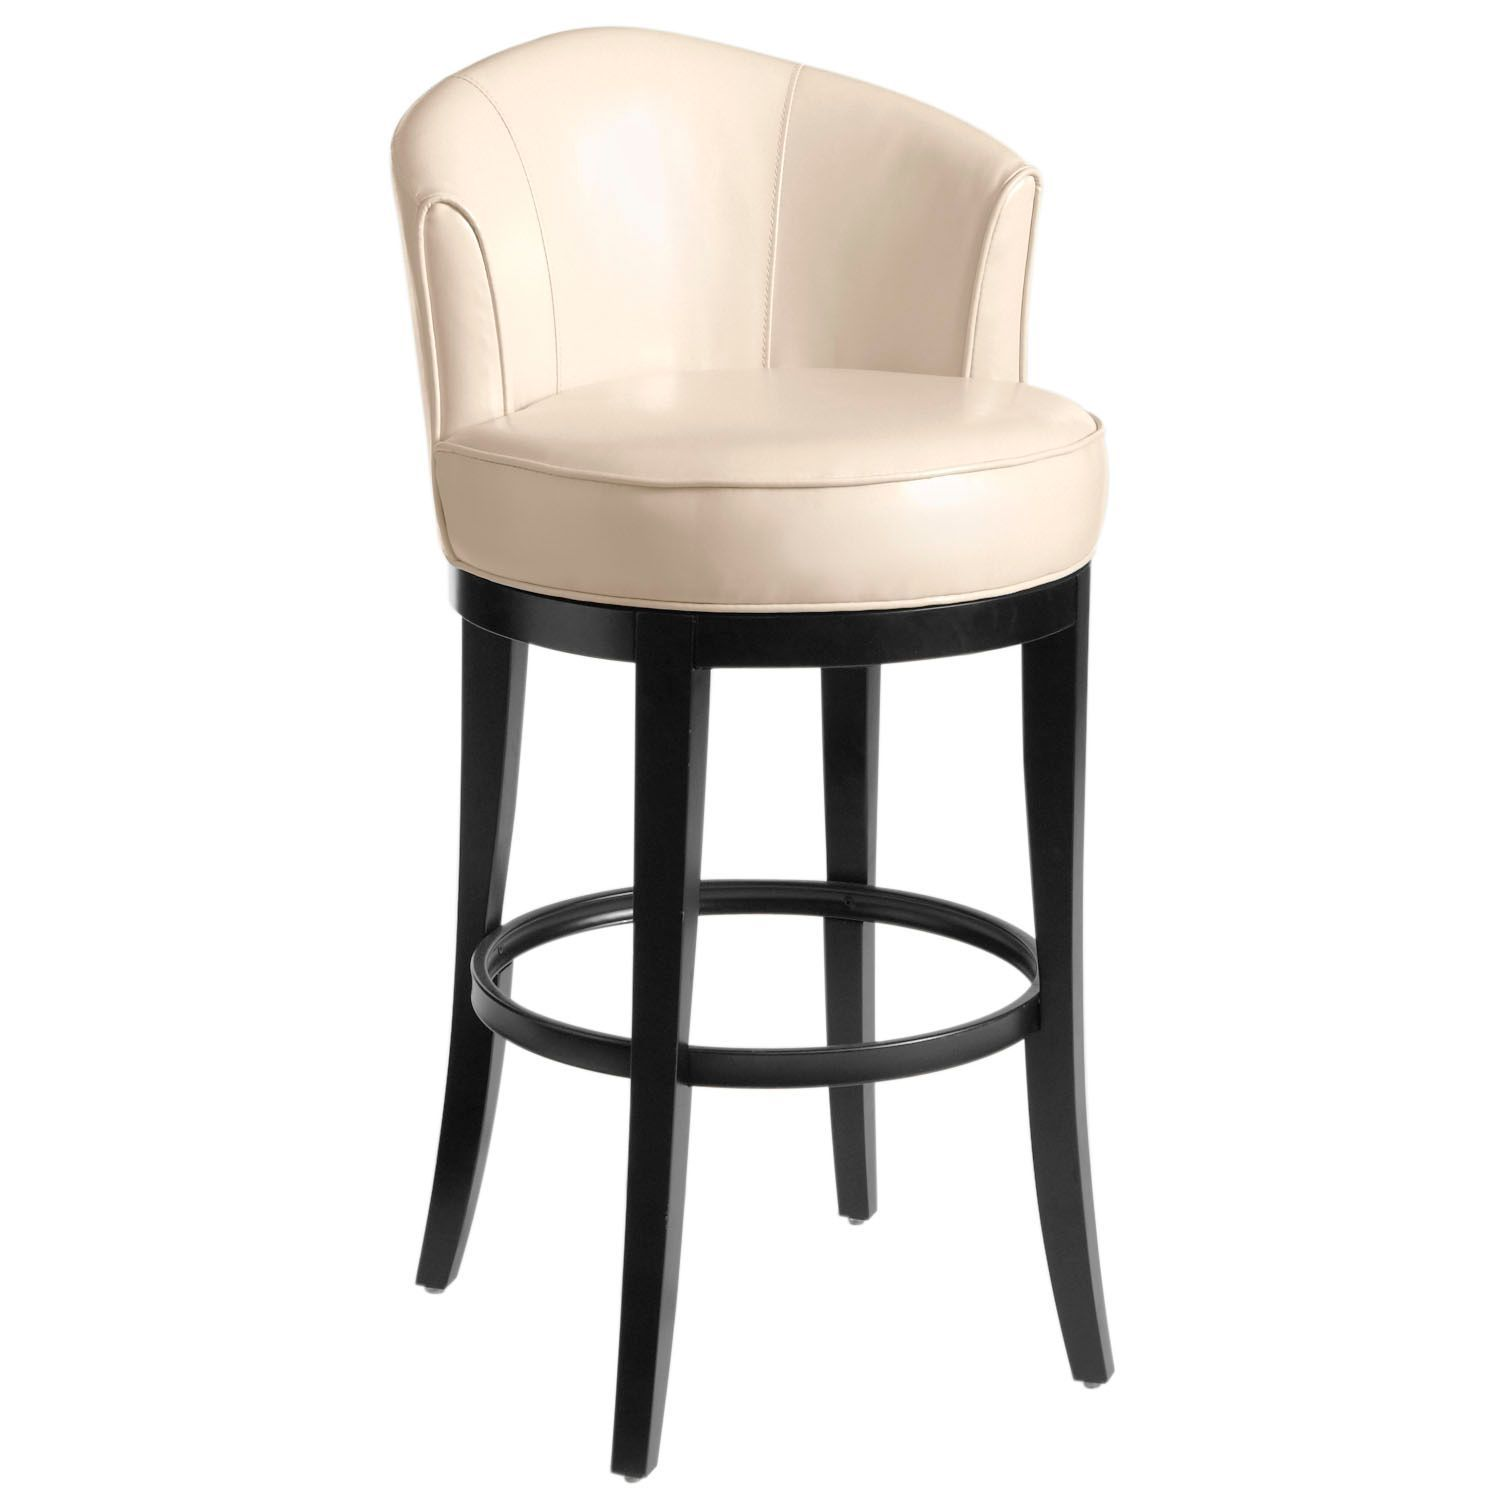 Incredible Isaac Ivory Swivel Bar Stool Bar Stool Swivel Bar Stools Ocoug Best Dining Table And Chair Ideas Images Ocougorg